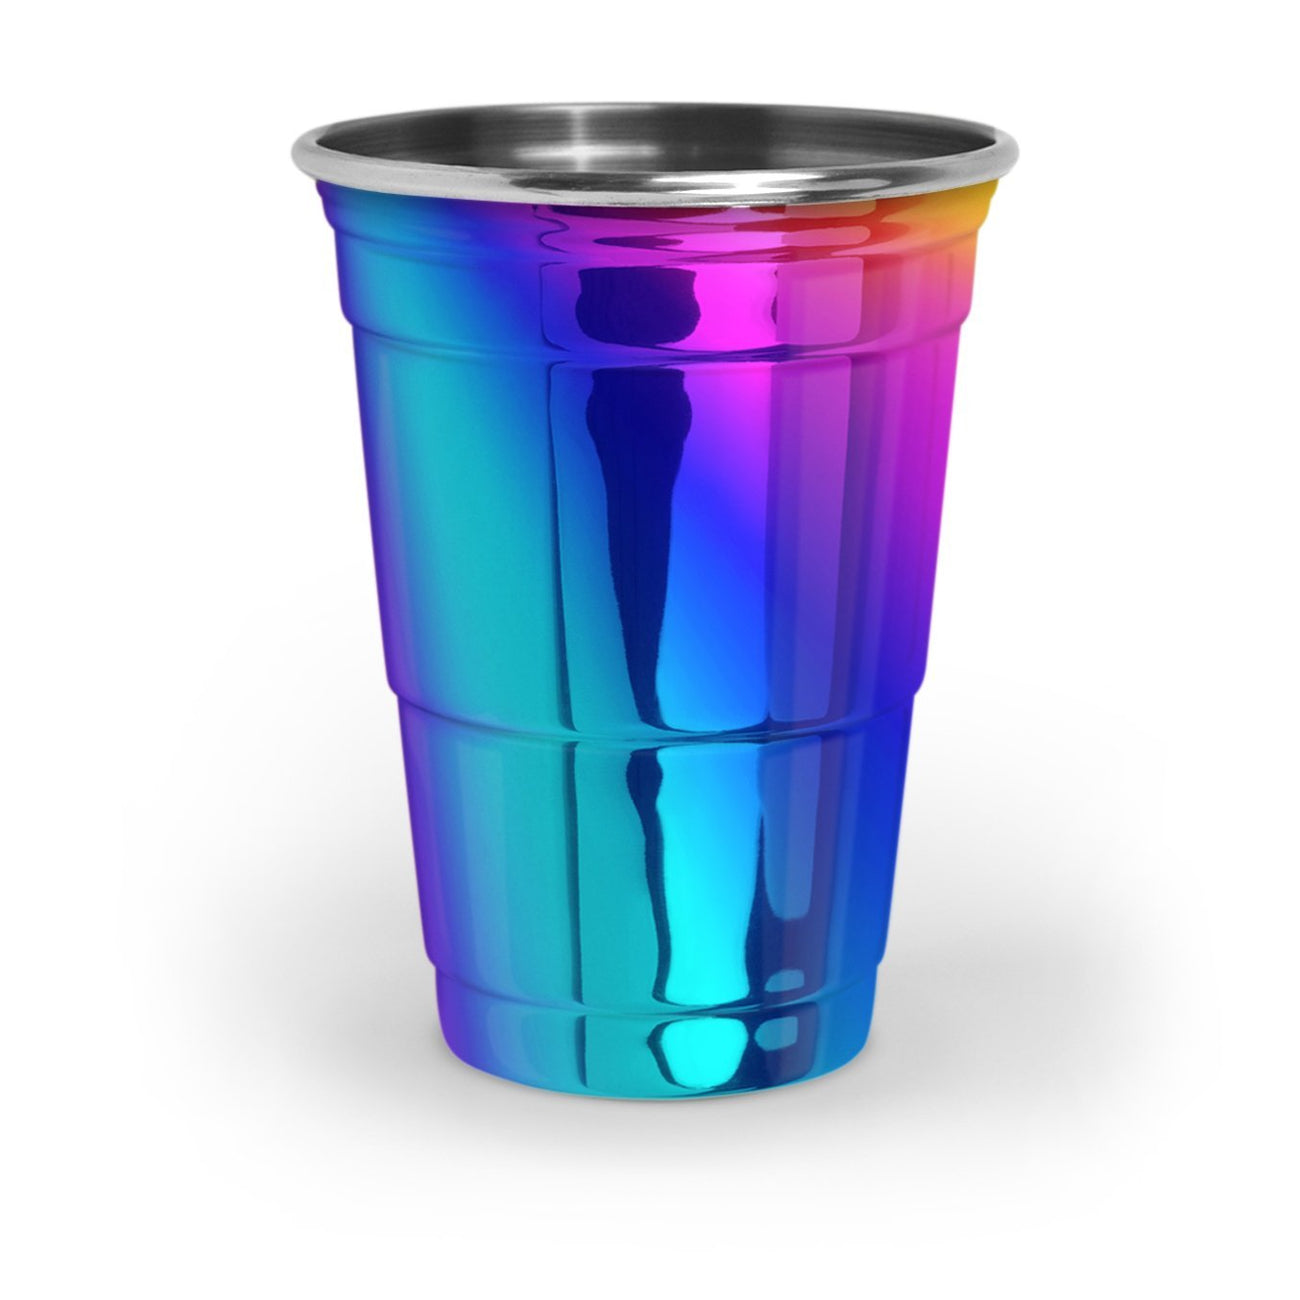 PartyRainbow™ - Premium Rainbow Iridescent Stainless Steel Party Cup